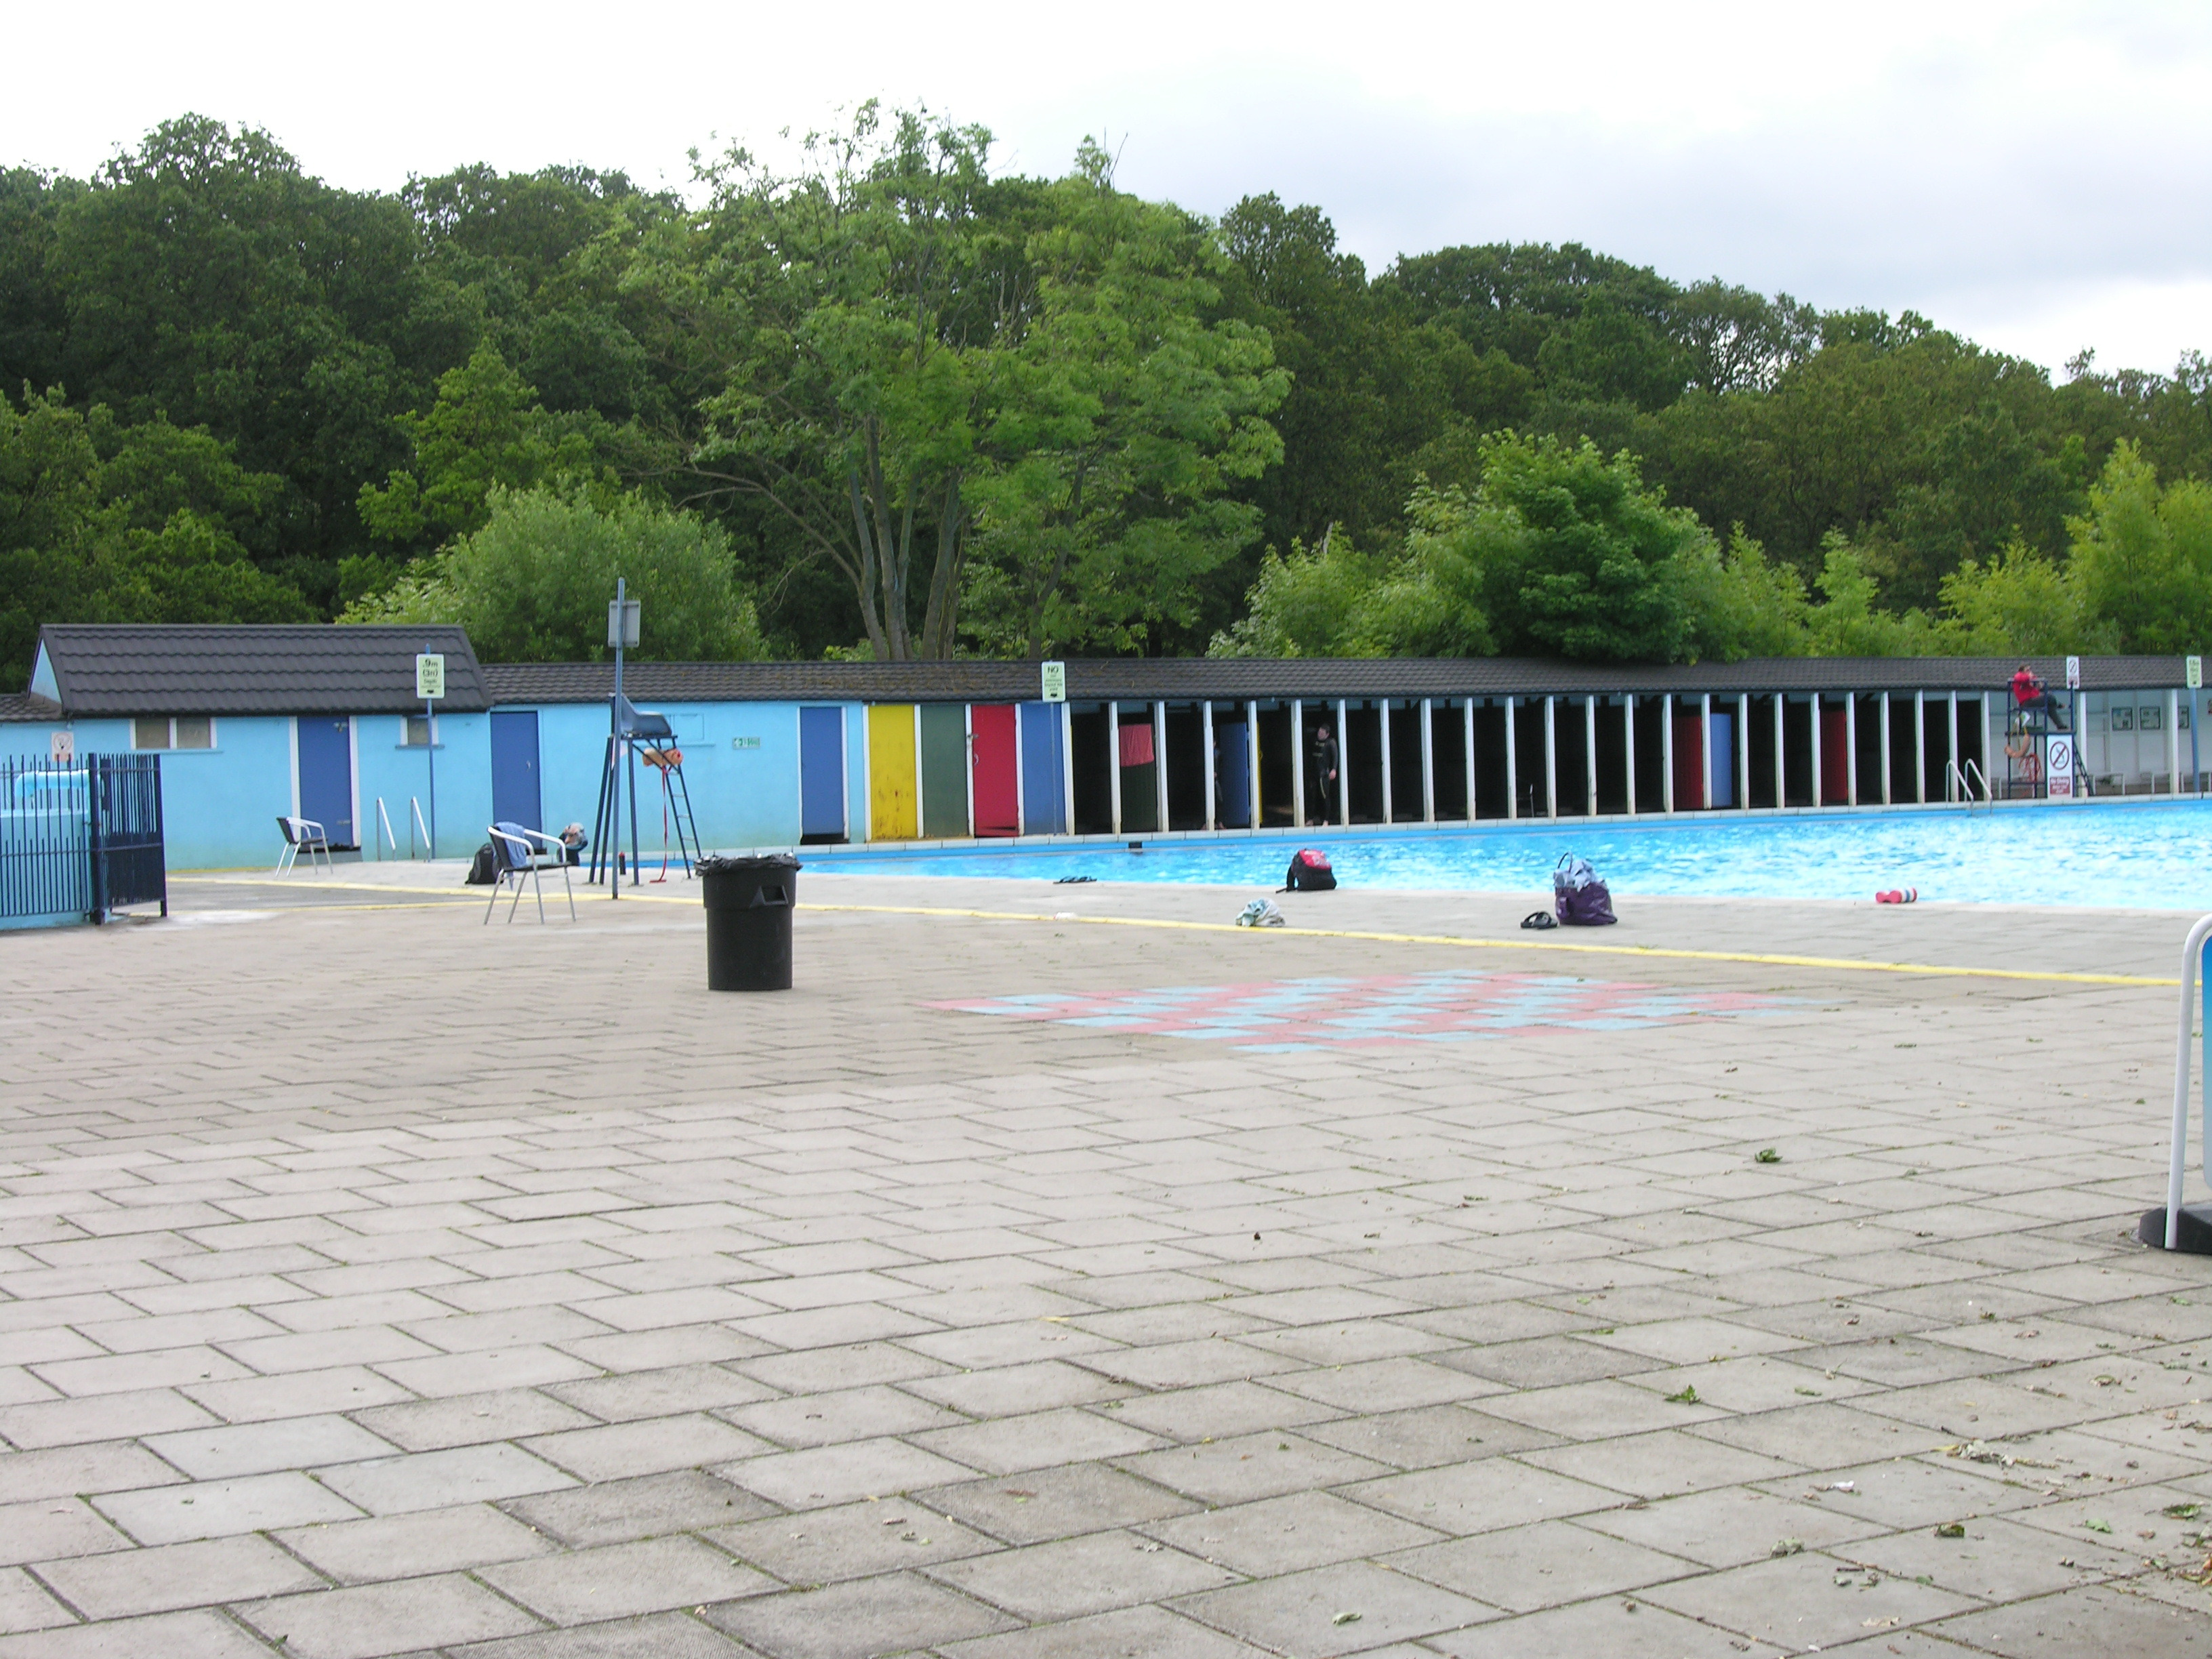 Beat the olympics in tooting london for Tooting bec lido swimming pool